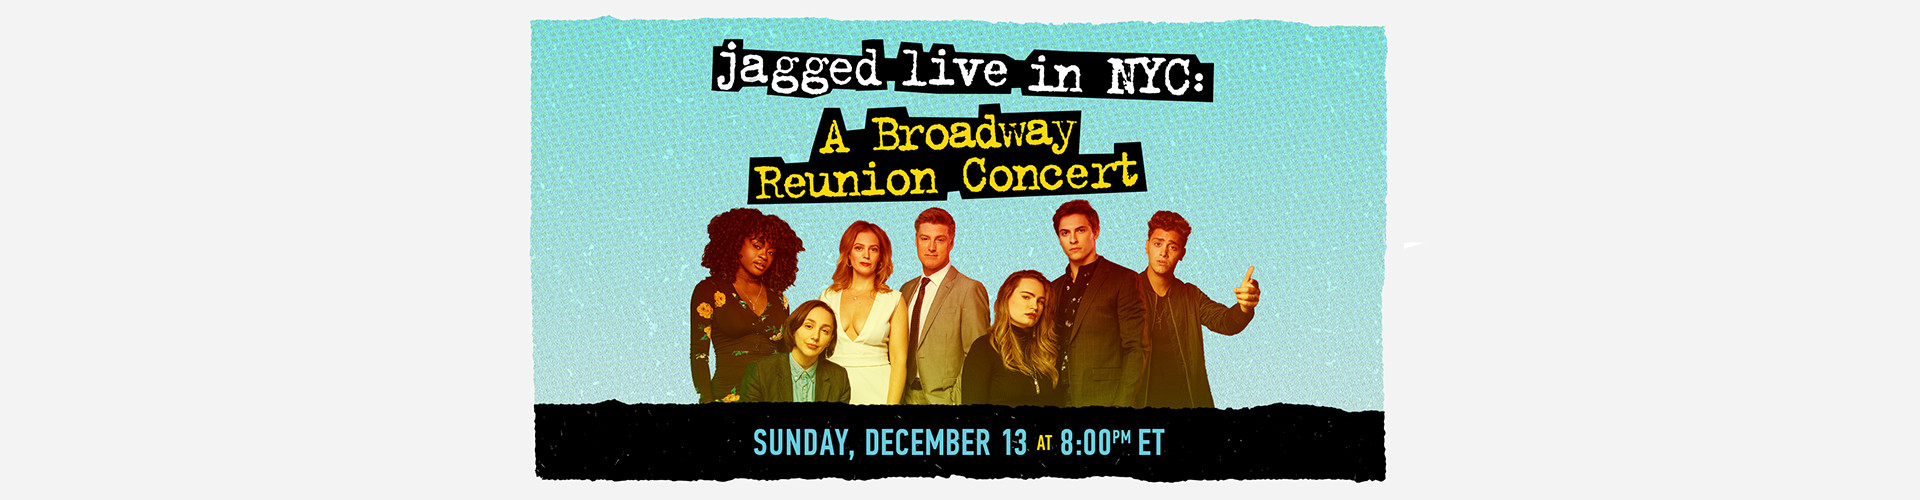 Jagged Live in NYC Event Image